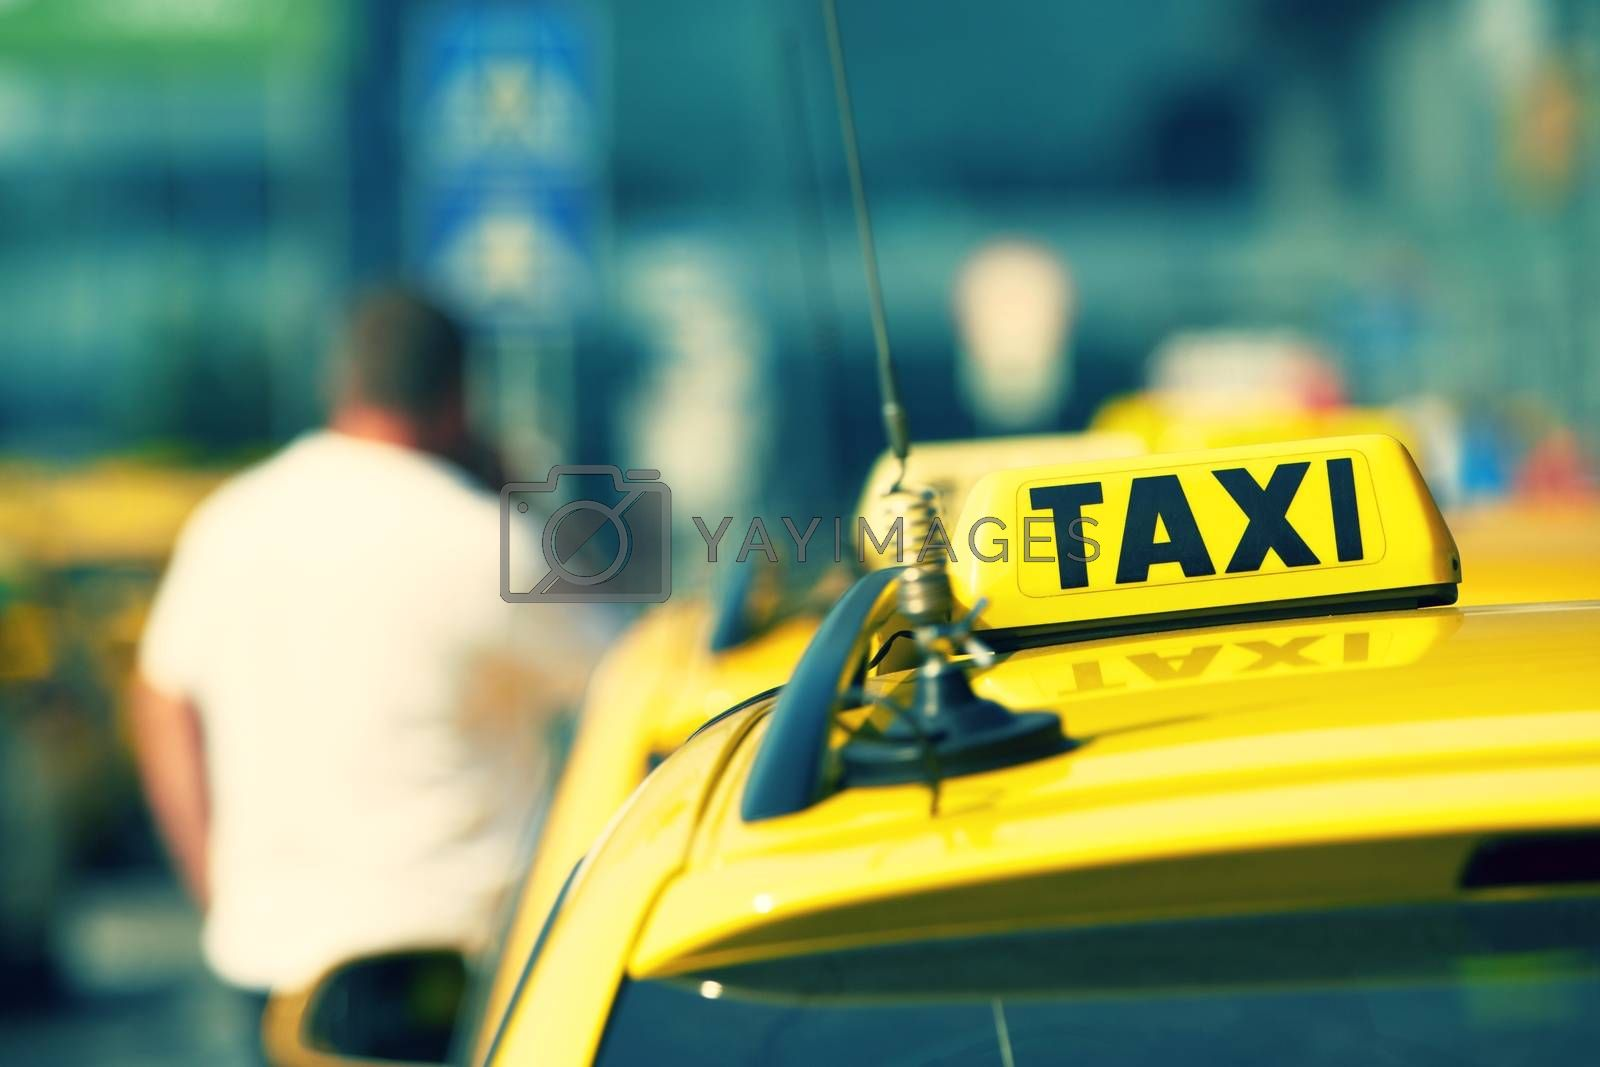 Taxi cars are waiting in row on the street - selective focus